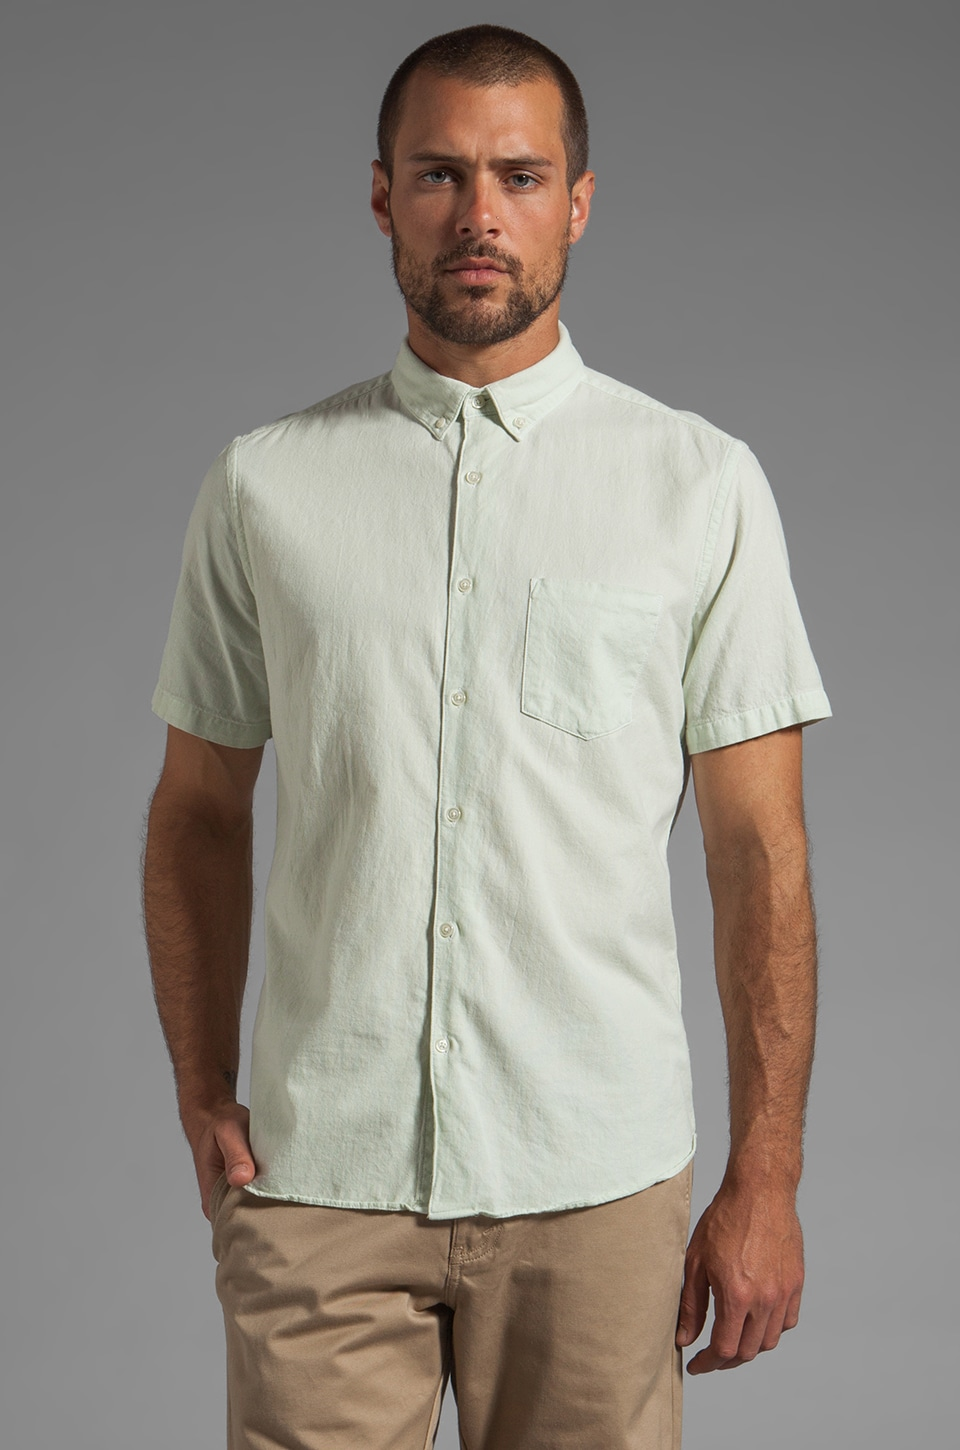 Steven Alan Single Needle Shirt in Mint Green